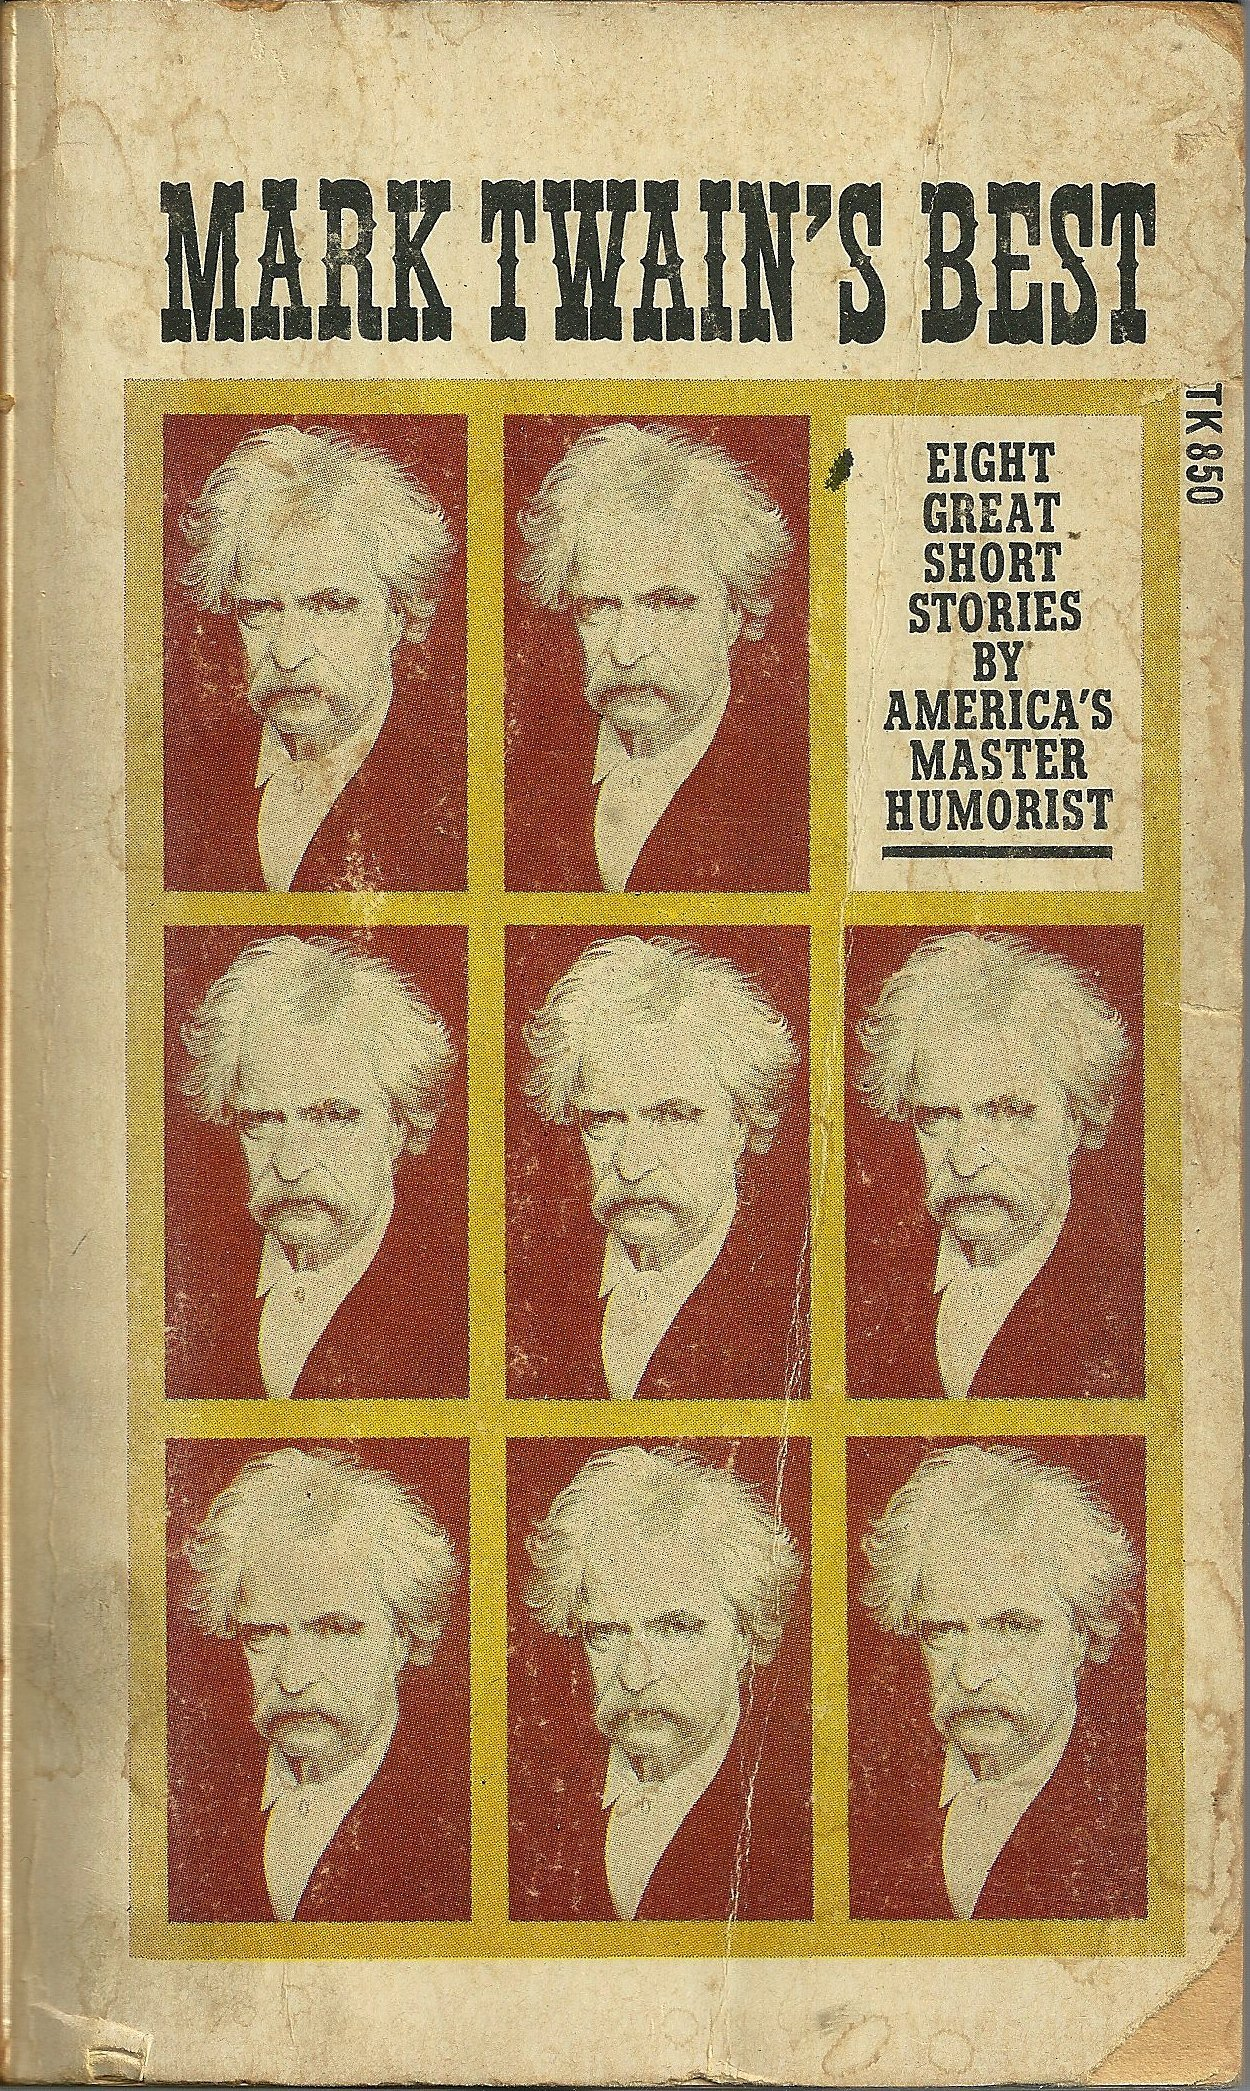 Mark Twains Best: Eight Great Short Stories Americas Master Humorist by Mark Twain